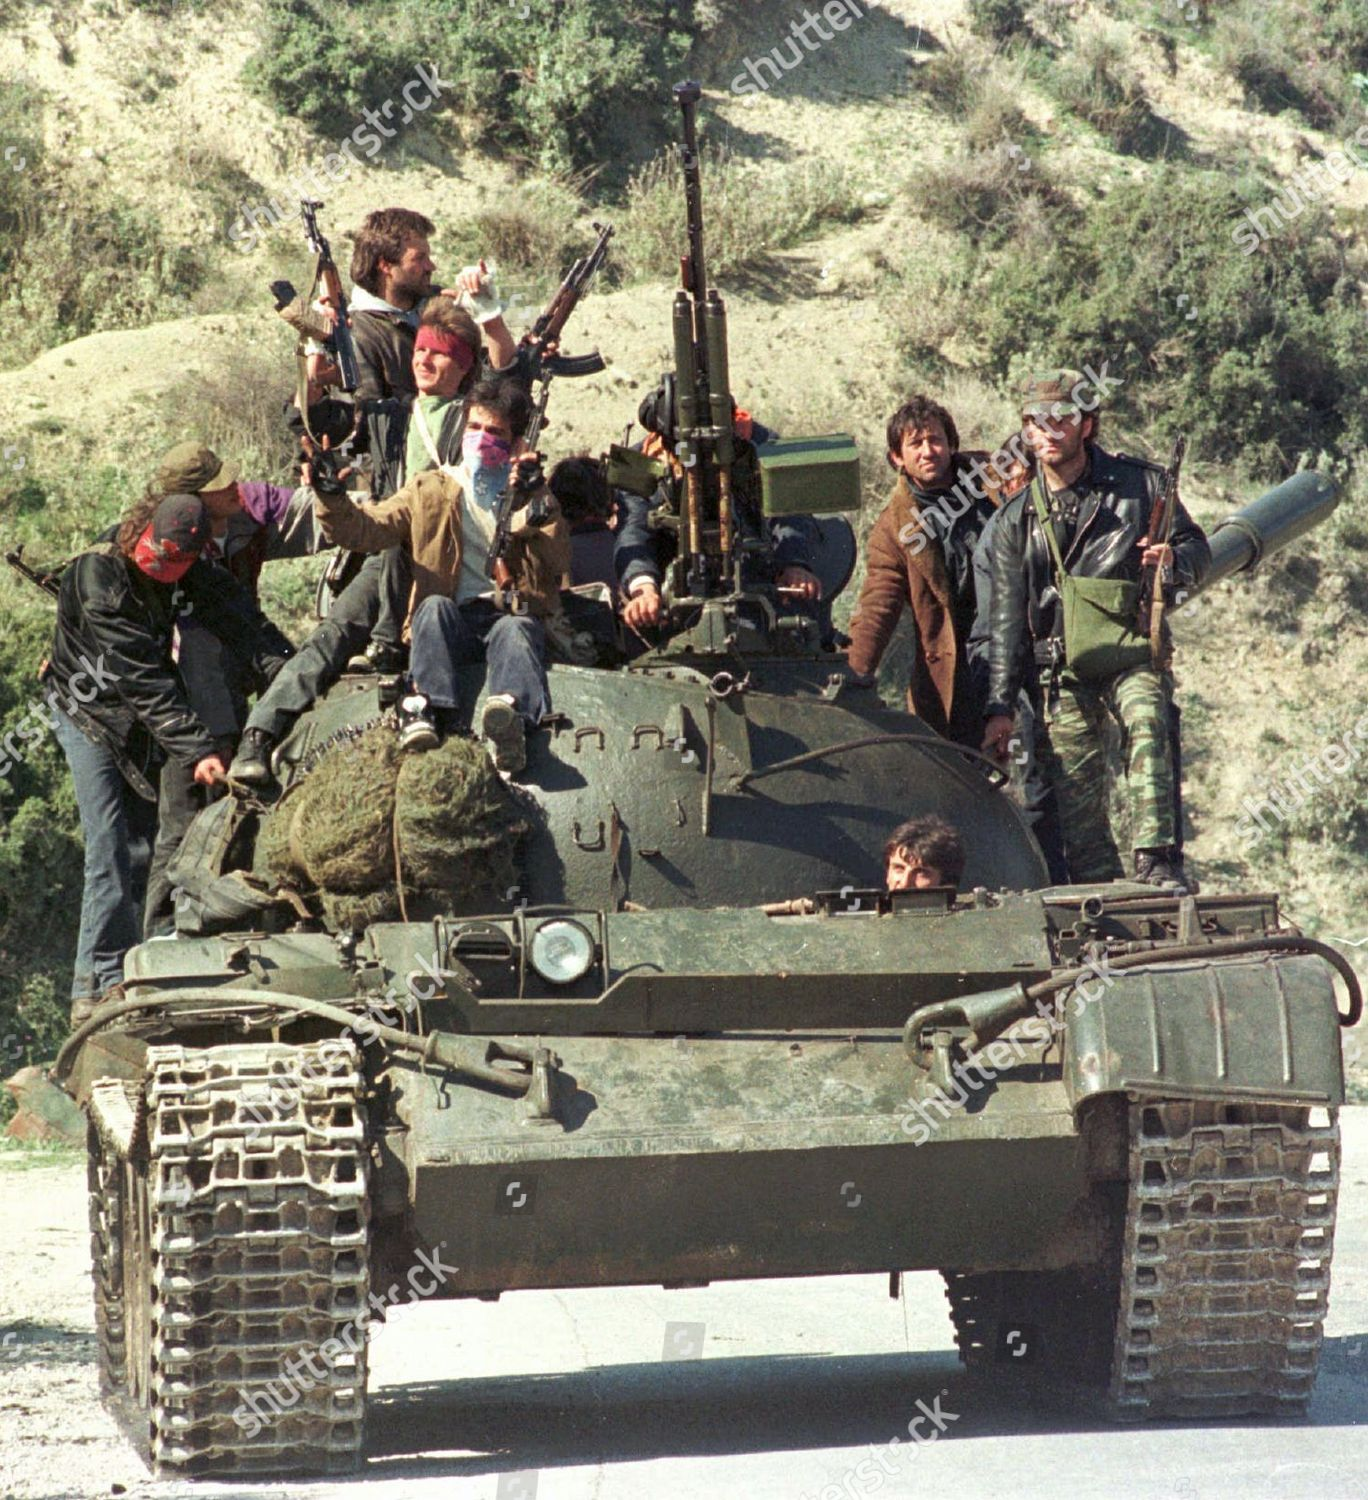 Albanian rebels ride on tank they seized Editorial Stock Photo - Stock  Image | Shutterstock